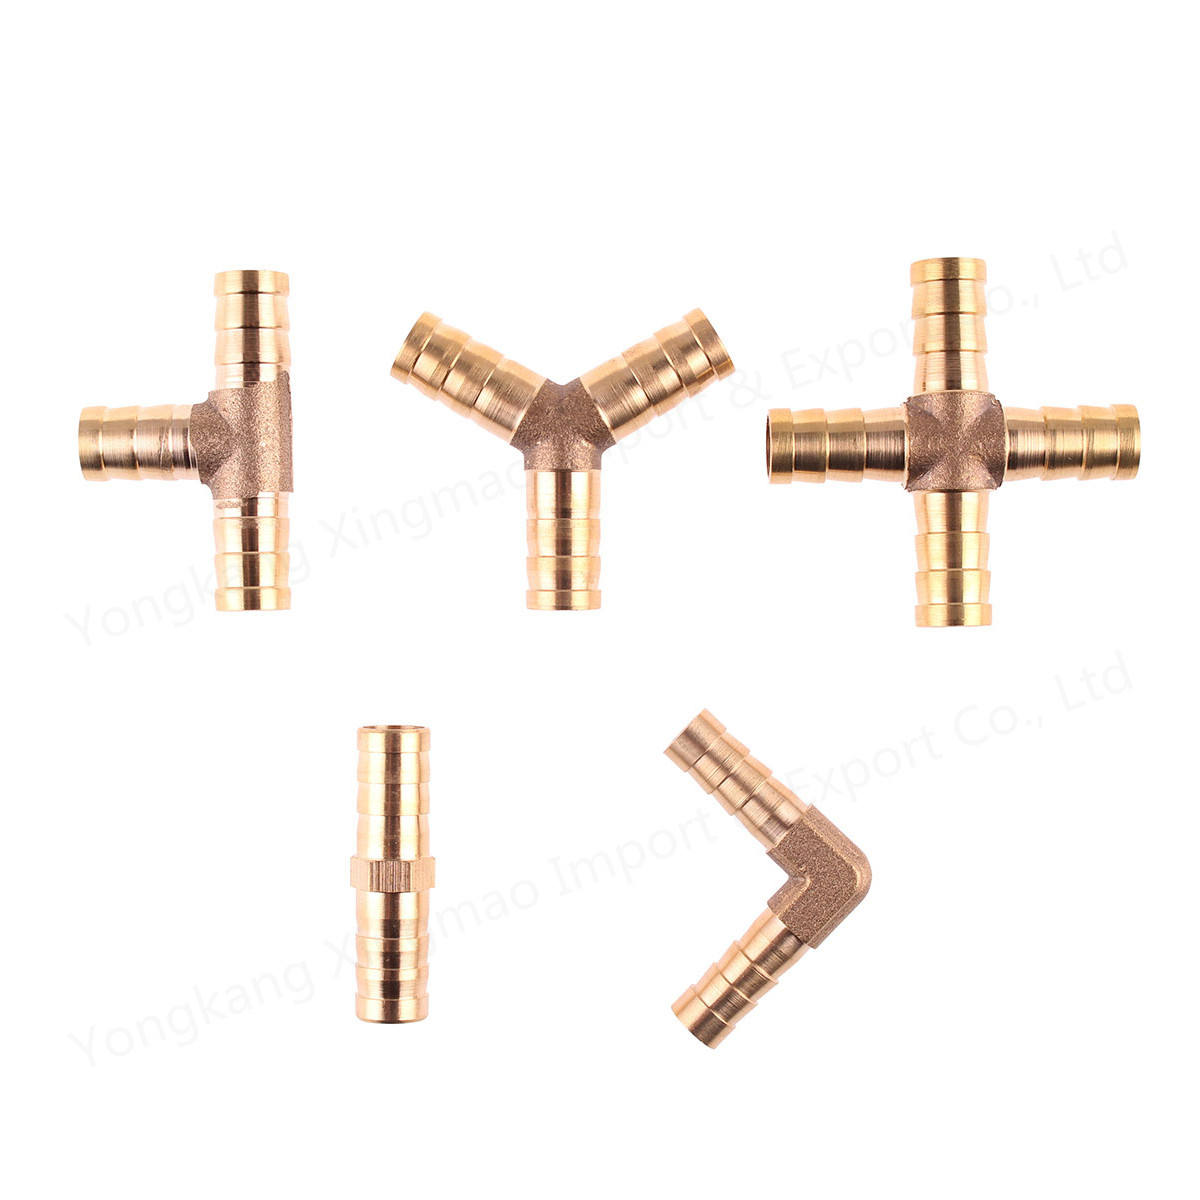 T X Y U Type Tube Barb 4mm 6mm 8mm 10mm 12mm Copper Barbed Connector Joint Coupler Adapter Brass Splicer Pipe Fittings